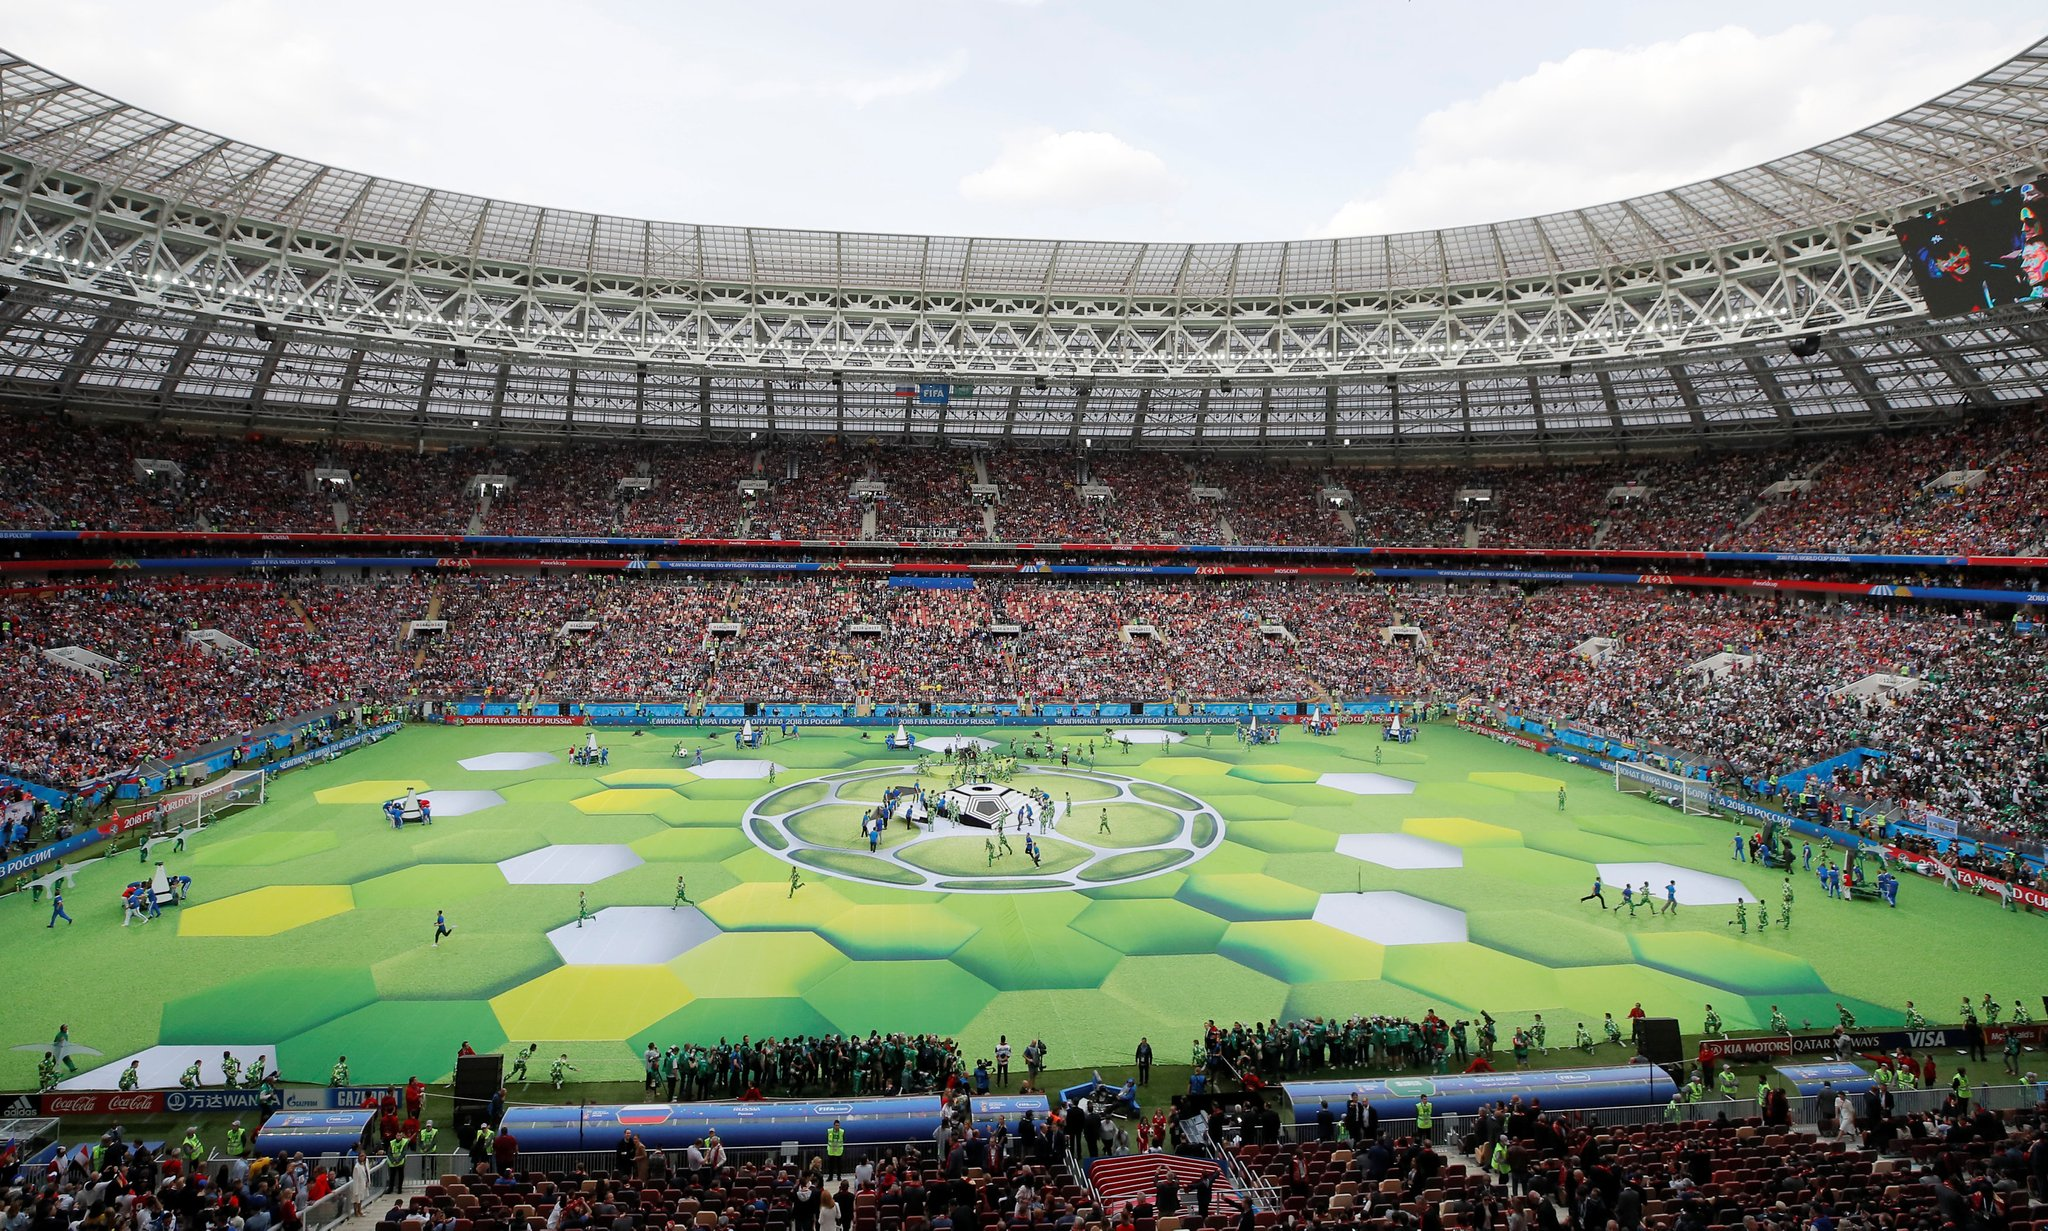 What happened in the World Cup opening ceremony 2018